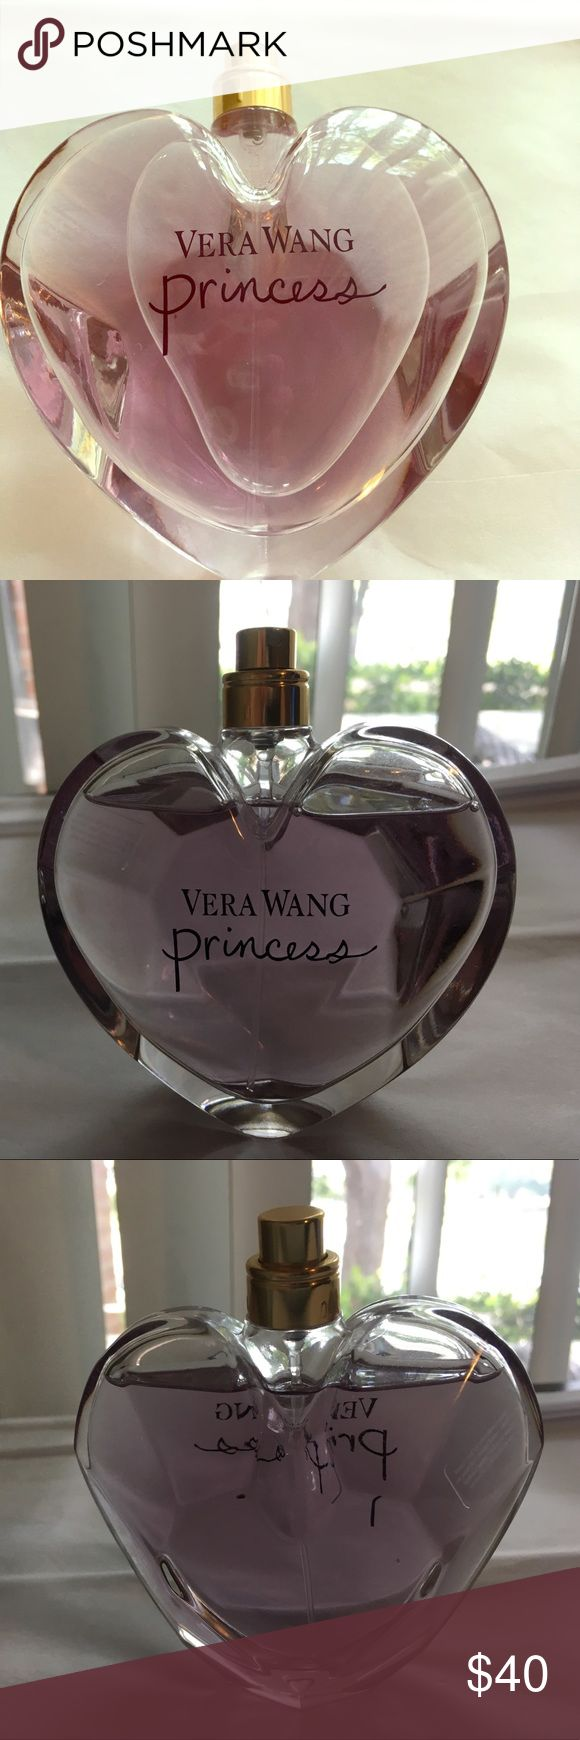 """Vera Wang Princess Perfume Large Bottle Vera Wang """"Princess"""" eau de toilette spray. Top notes: apricot, mandarin, apple and water lily. Middle notes: tuberose, guava, dark chocolate and tiare flower. Base notes: amber, vanilla and woodsy notes. 3.4 fl. oz./100 mL. Used only a few times- no top or box. I'll ship securely to ensure safe delivery! Vera Wang Other"""